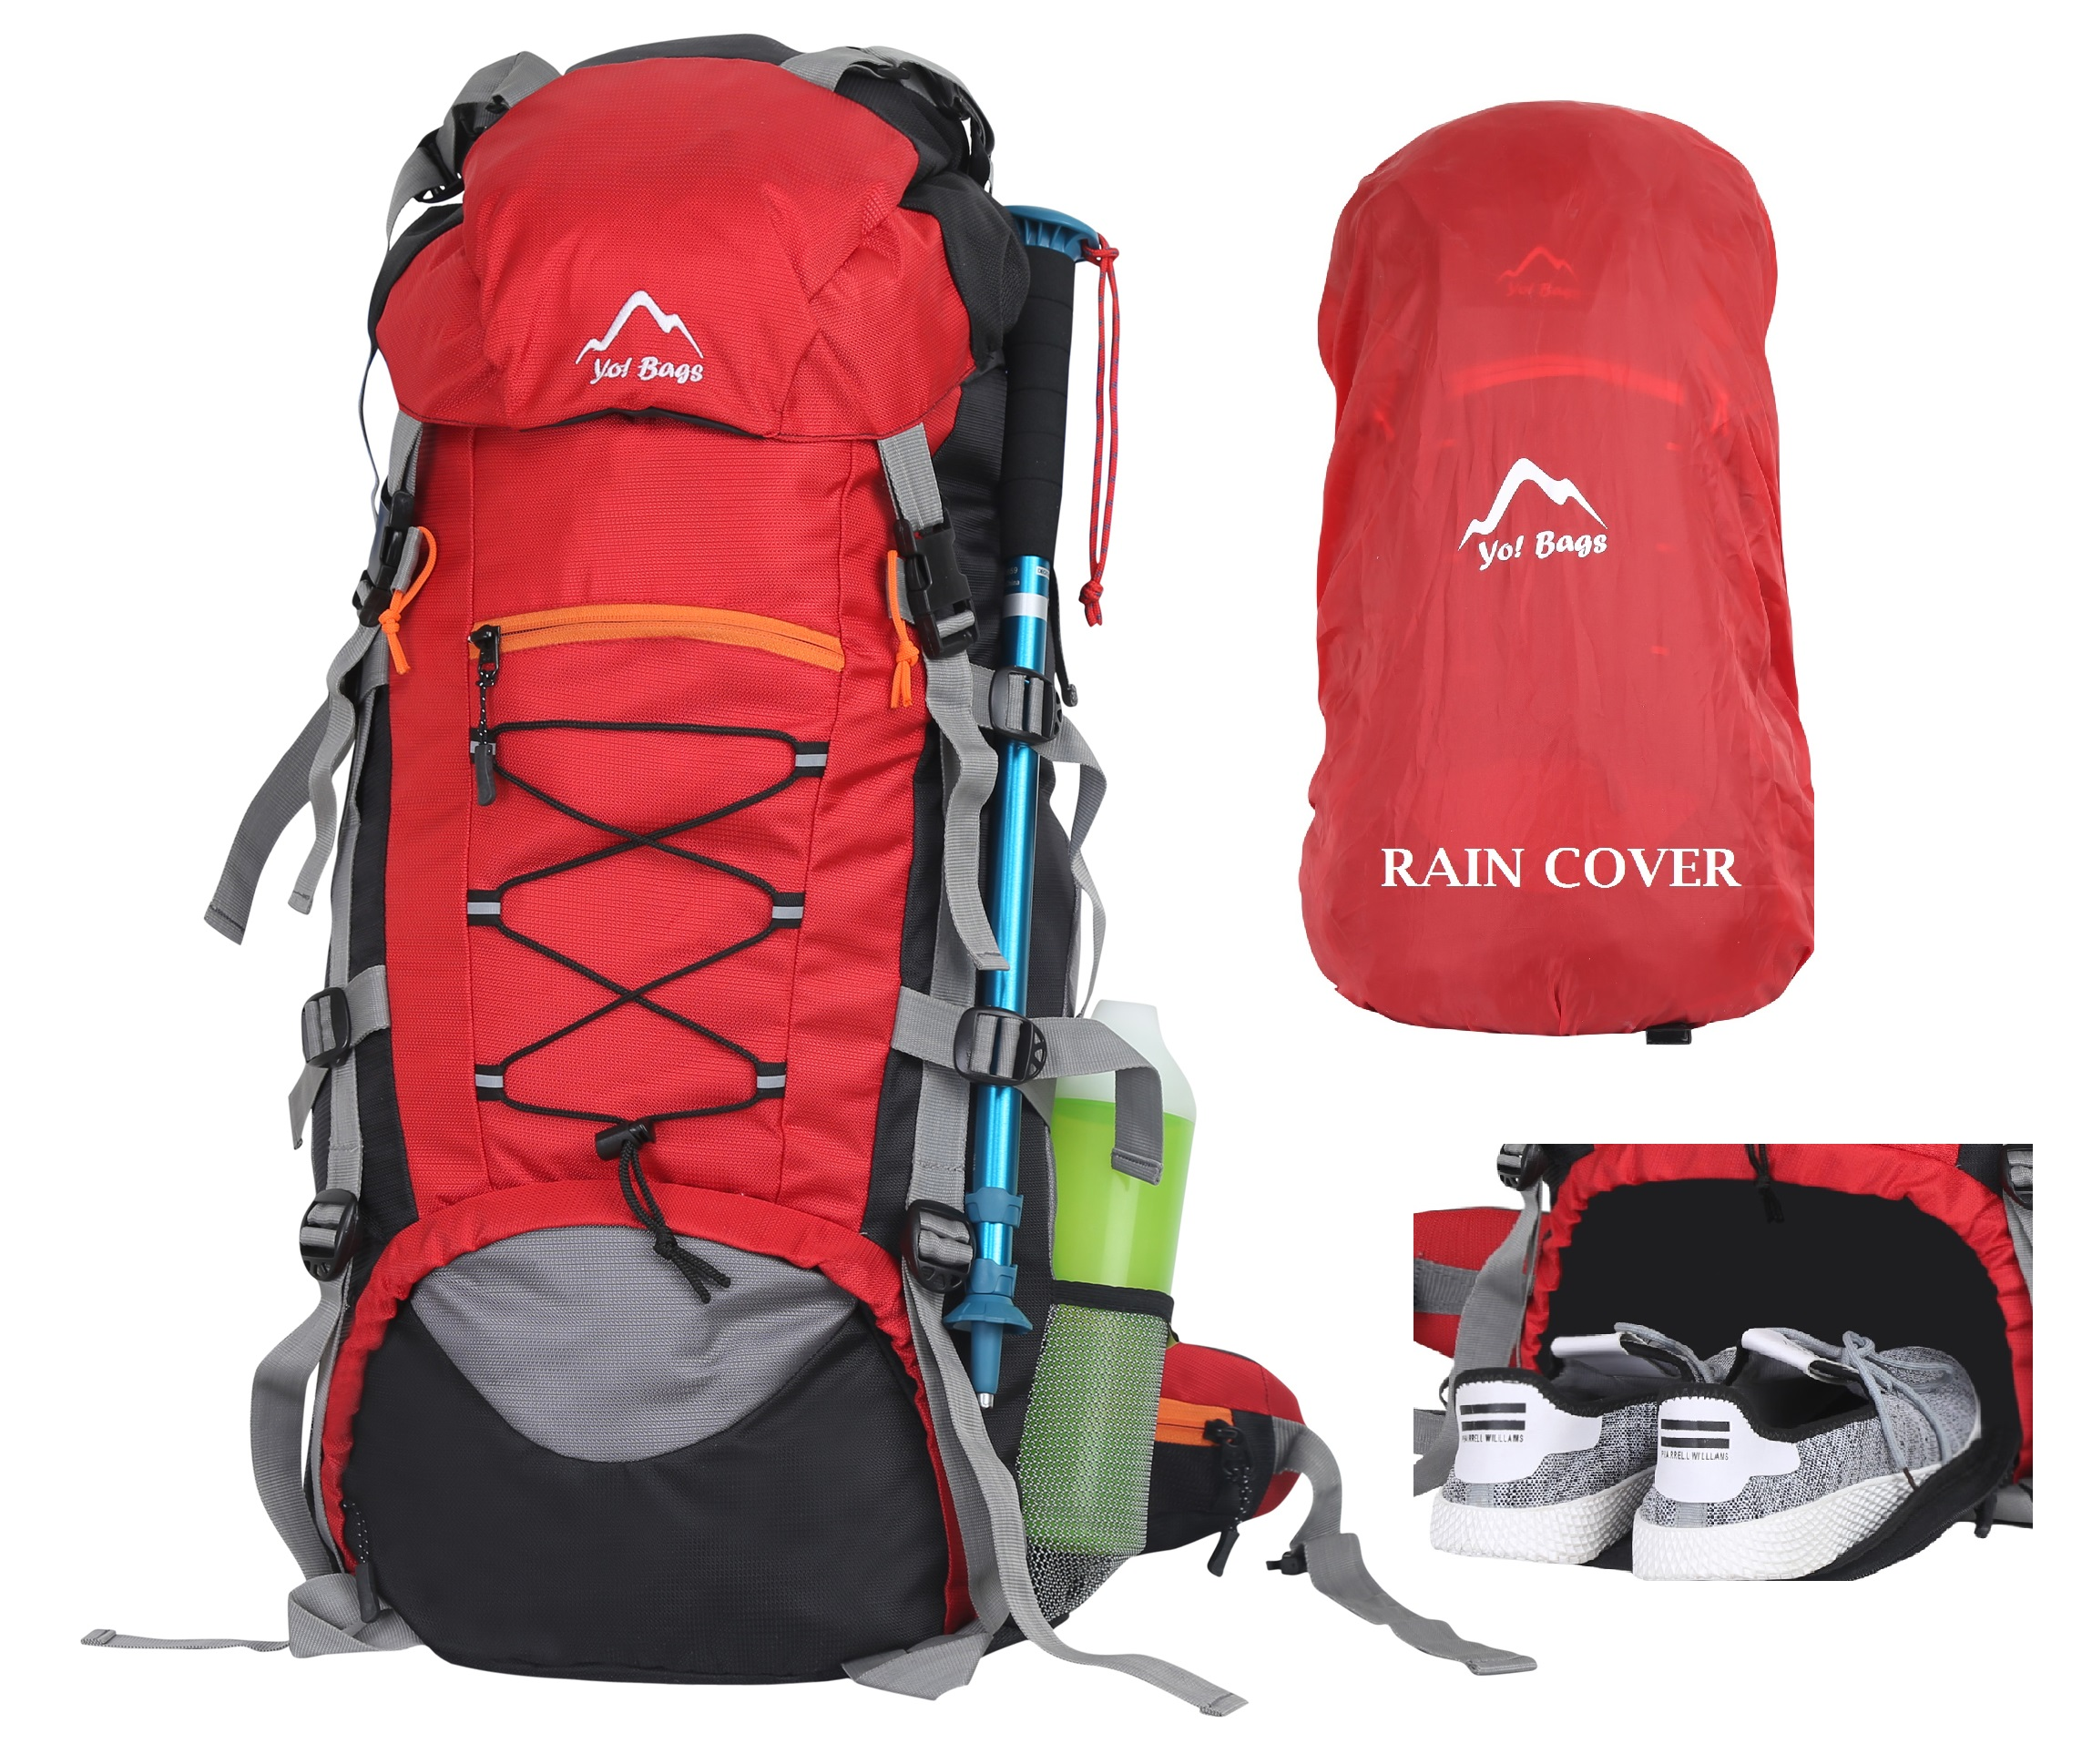 Bags Hiking Bag in Rucksack 65 ltr Travel Backpack for Adventure Camping Trekking Bag with Rain Cover  Red by YOI